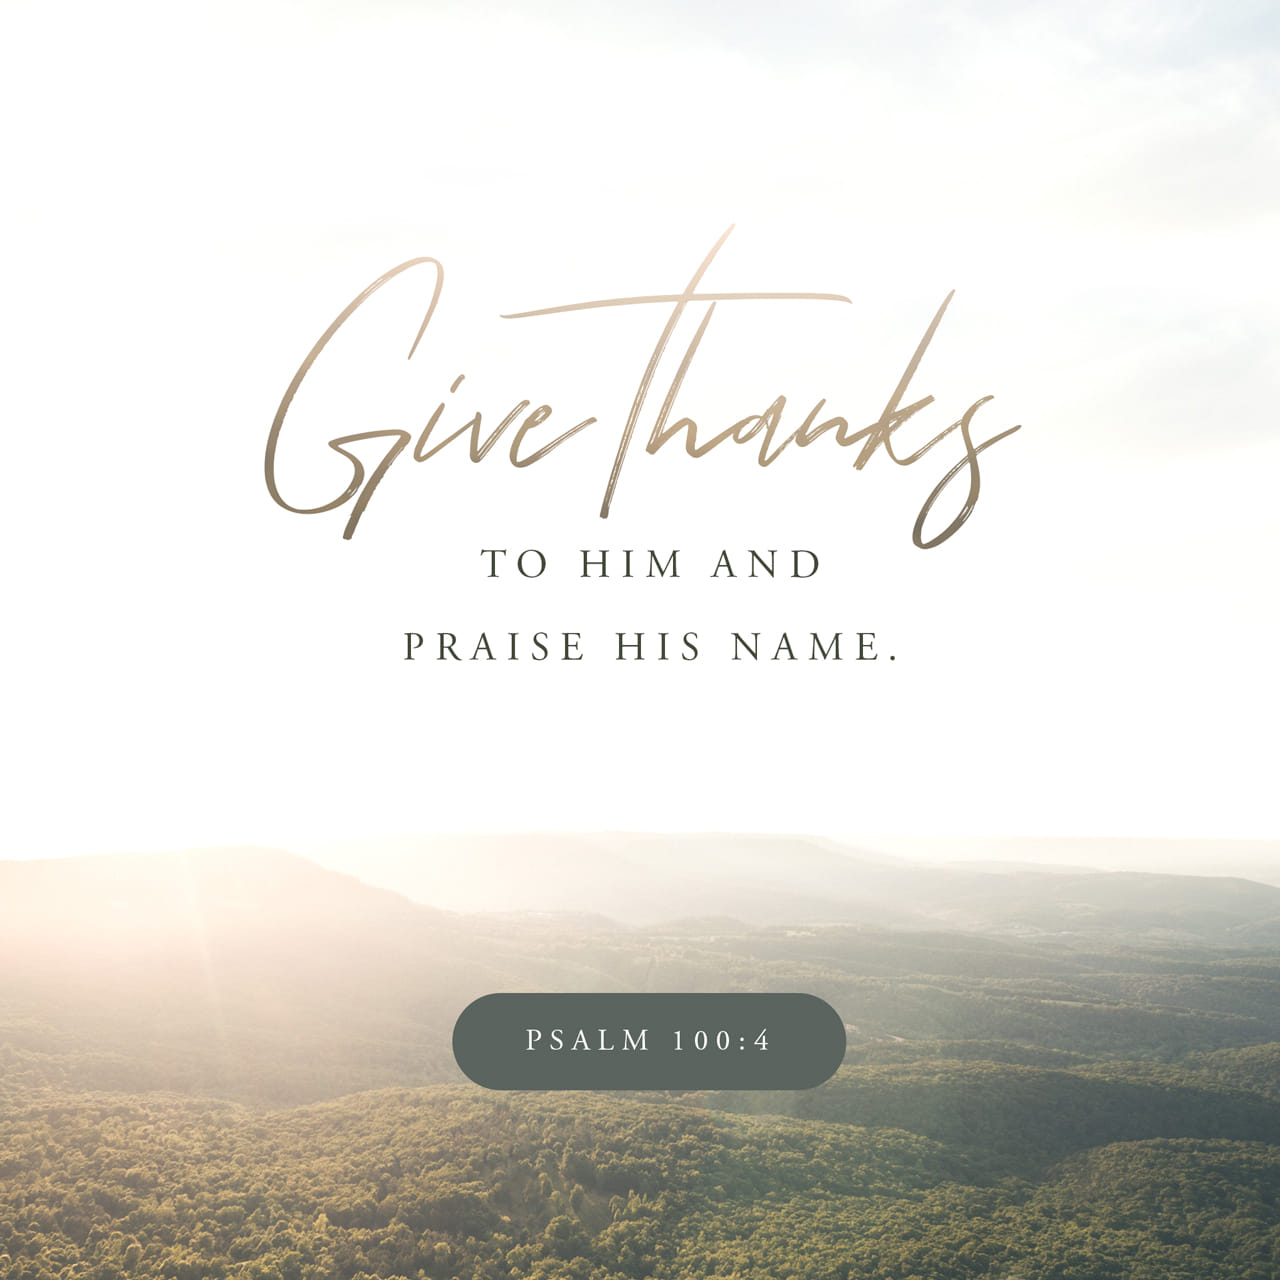 Psalm 100:4 Enter his gates with thanksgiving and his courts with praise; give thanks to him and praise his name. | New International Version (NIV)